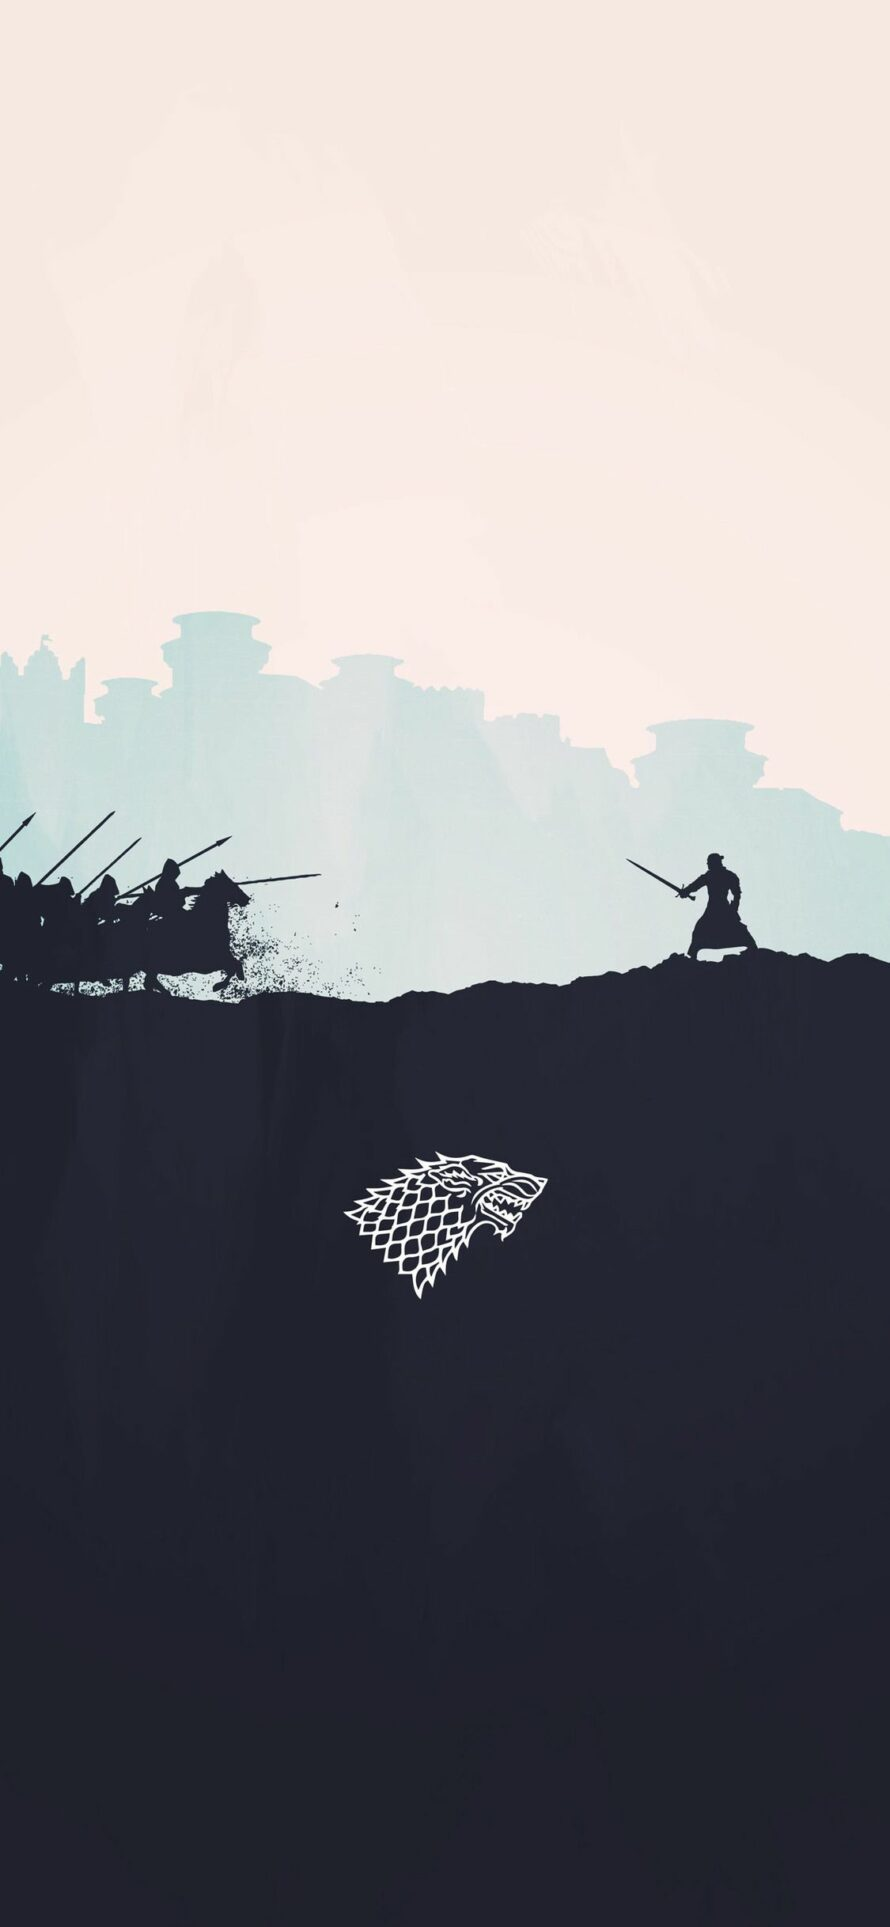 Military Phone Wallpaper - Game Of Thrones Wallpaper Iphone , HD Wallpaper & Backgrounds